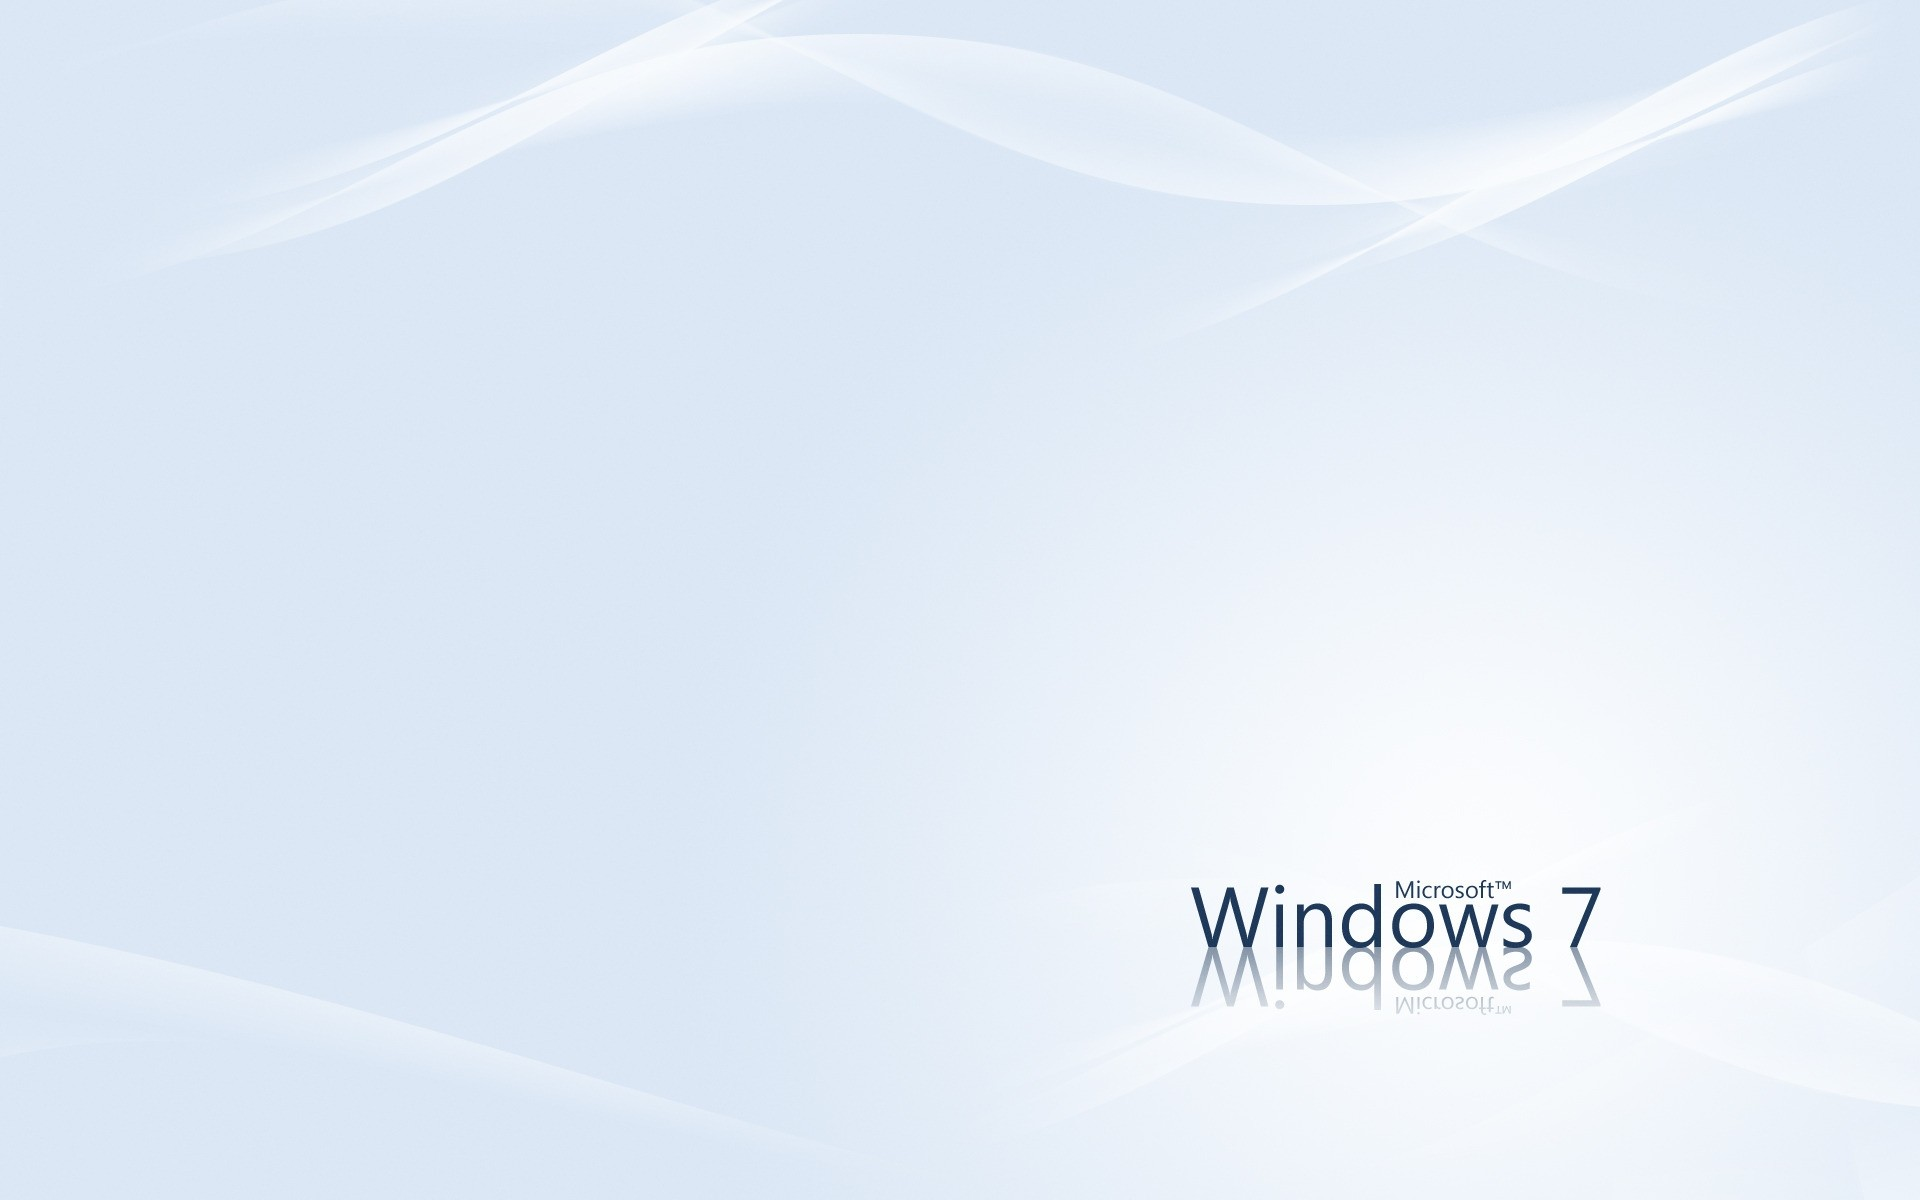 Windows 7 ярким